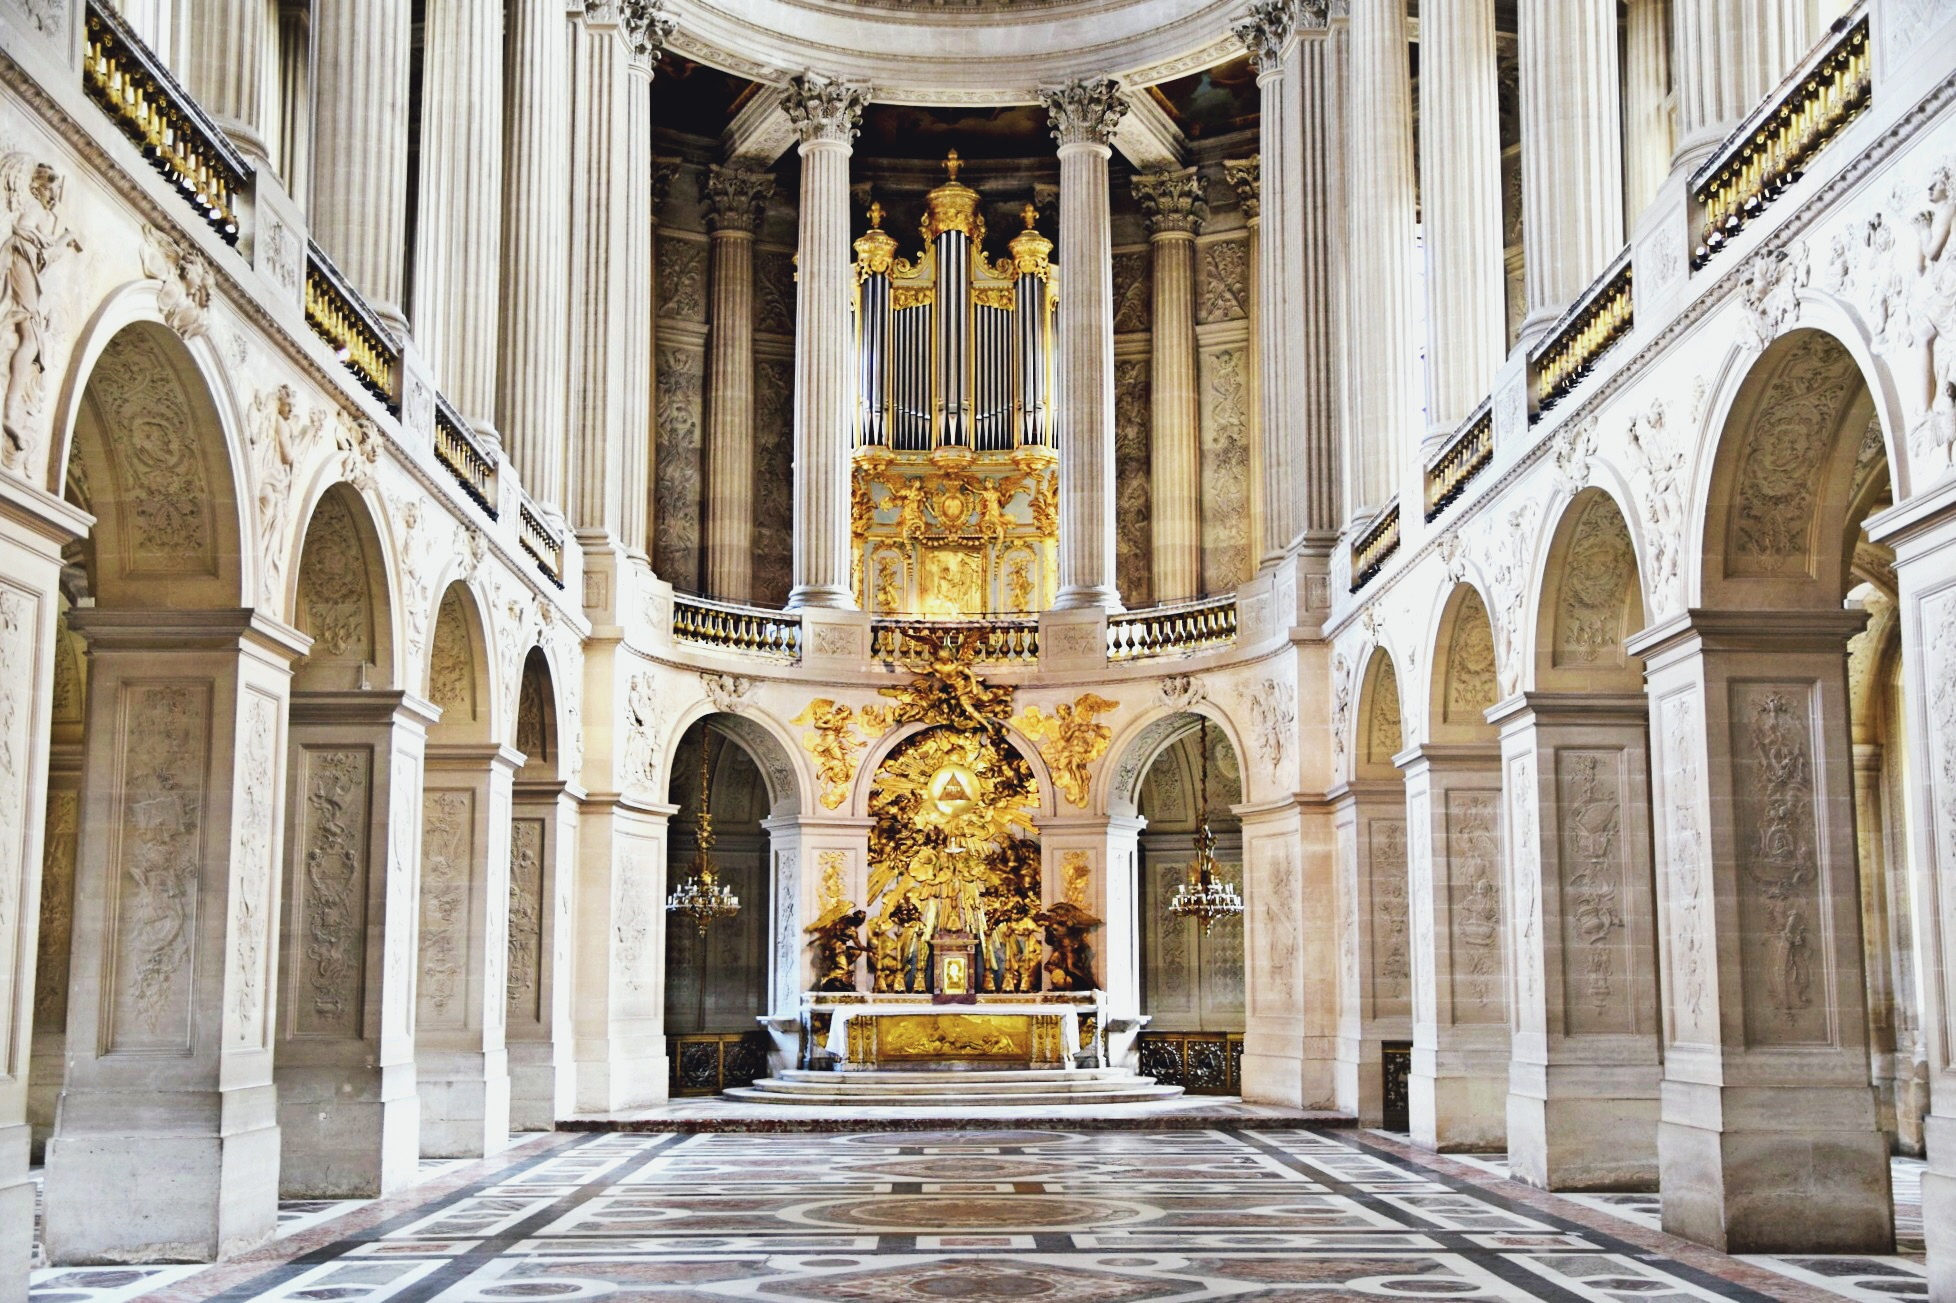 Chateau de Versailles Chapel // Welcome To Versailles // Paris France Travel Diary // Pink Chanel Tweed Jacket // Chanel Pink and Beige Pleated Dress // Gold Gucci Loafers // Chanel Black Classic Flap Bag // Pearl Round Chanel Sunglasses // Los Angeles Fashion Blogger Daphne Blunt: To Style, With Love